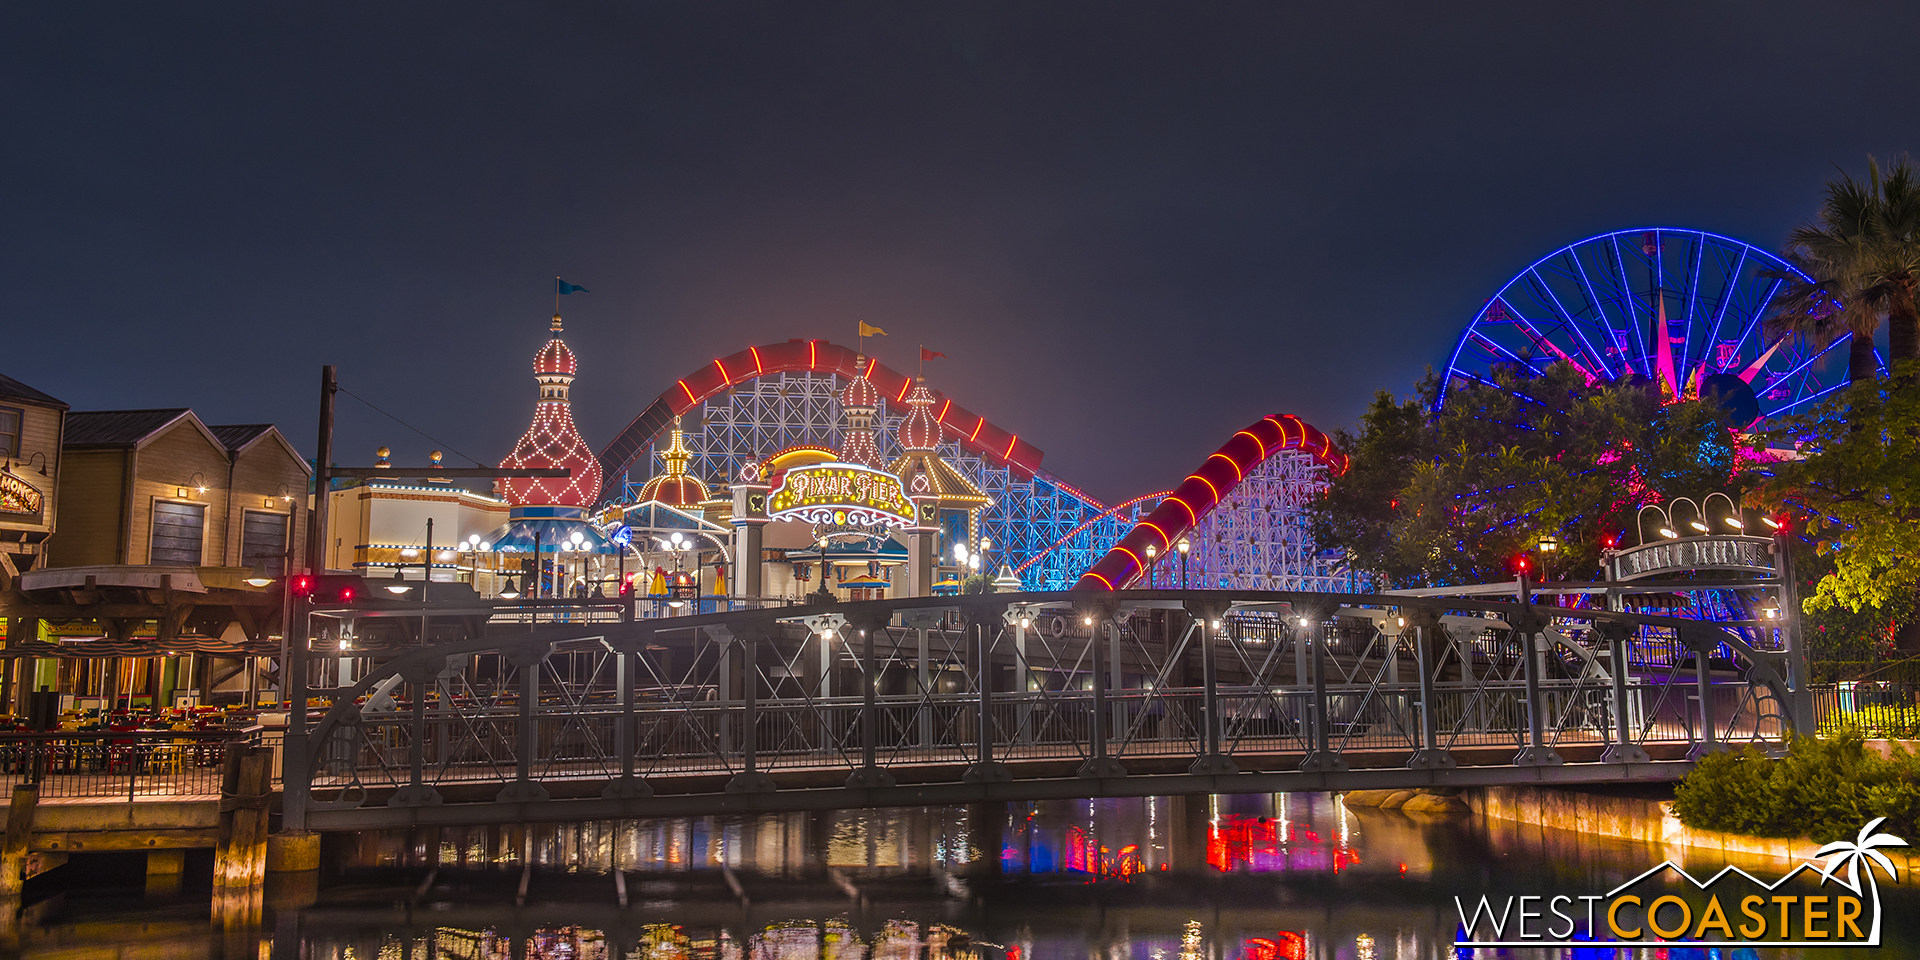 For all that it's been aligned, there are definitely many photogenic angles for Pixar Pier.